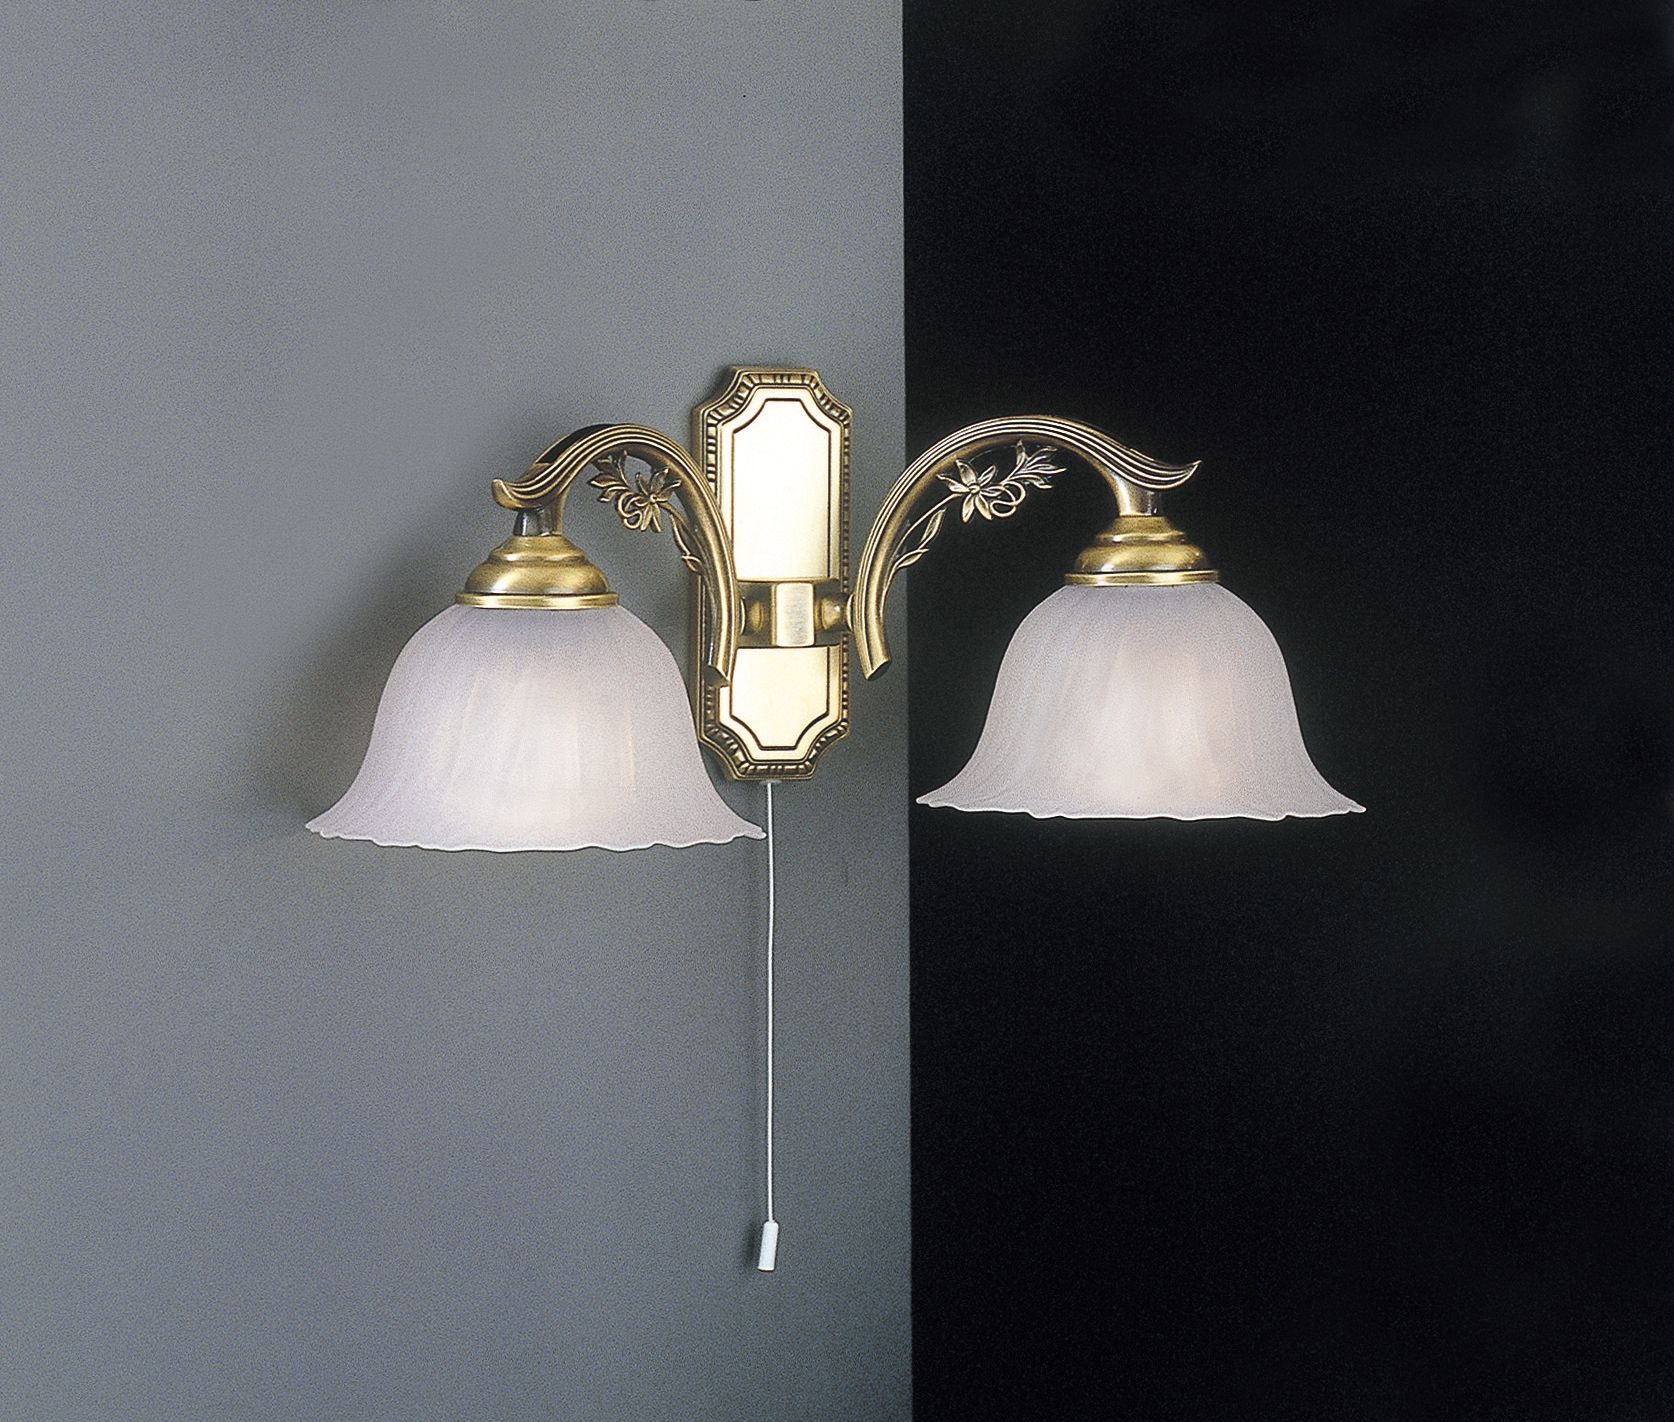 lighting kneen glass sconce lobmeyr dering wall hall met light century co mid modern metal